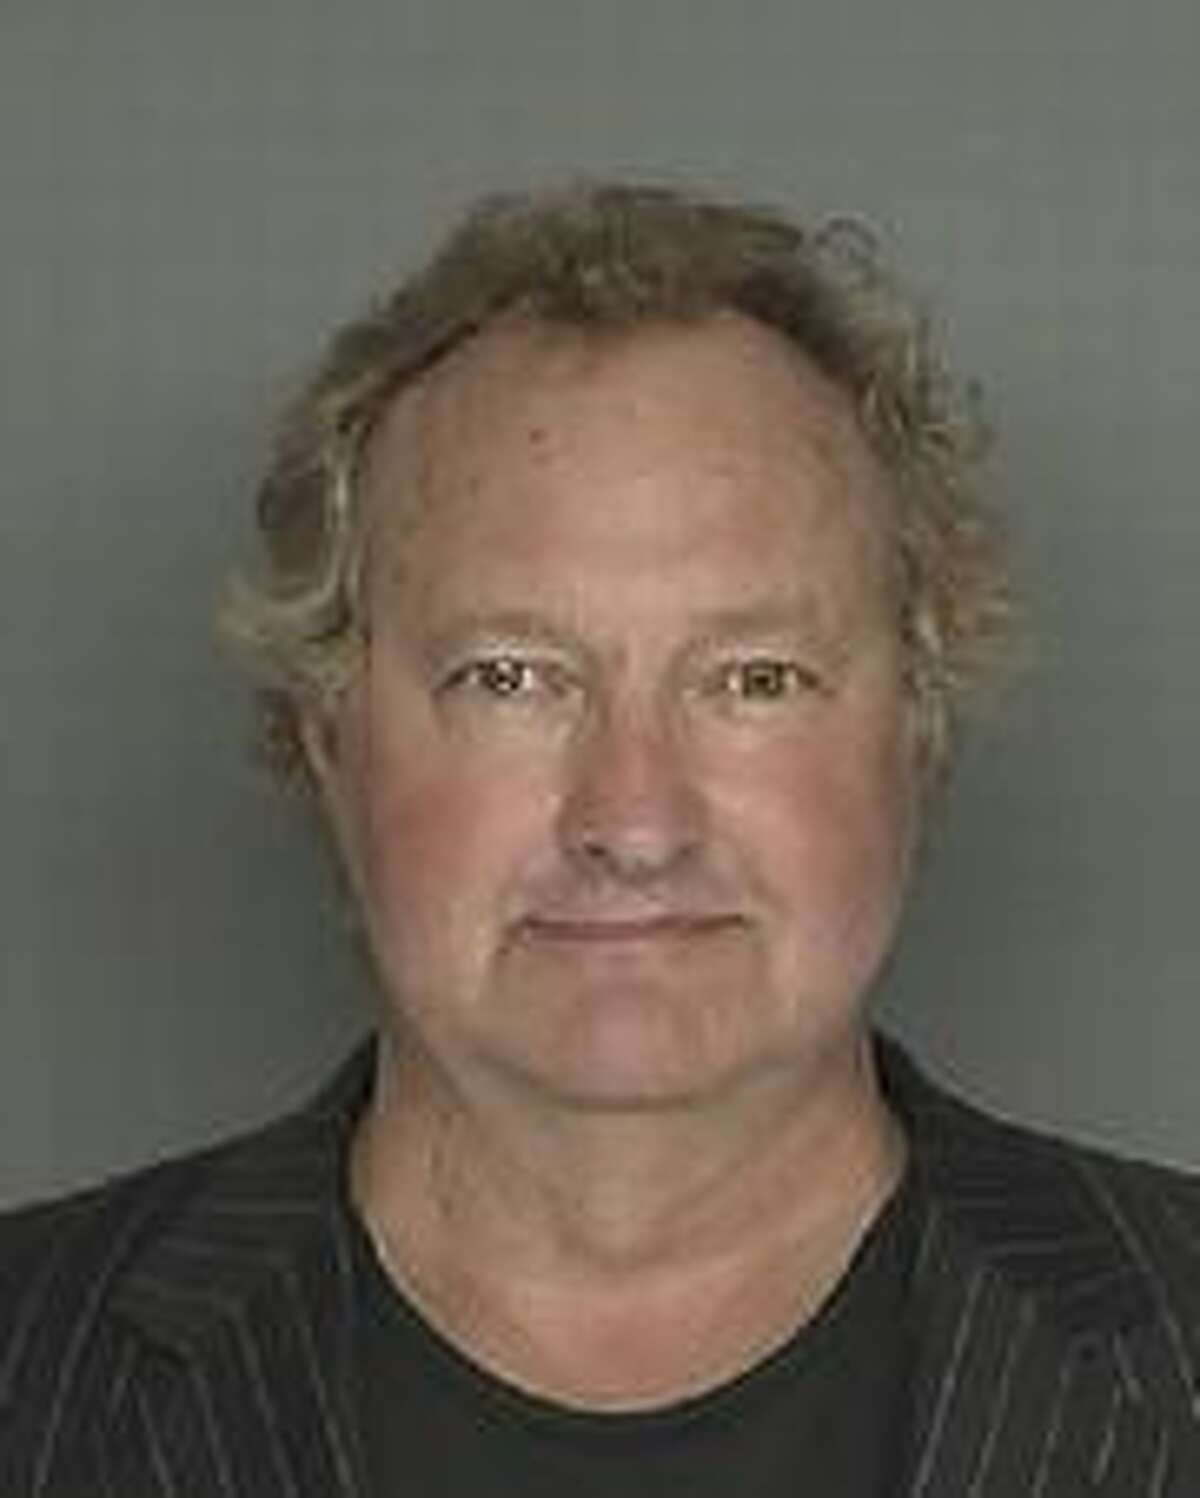 Randy Quaid, Arrested Randy and his wife Evi faced burglary charges when they allegedly squatted in a property they'd previously owned. Several warrants were issued for the couple. They then claimed the